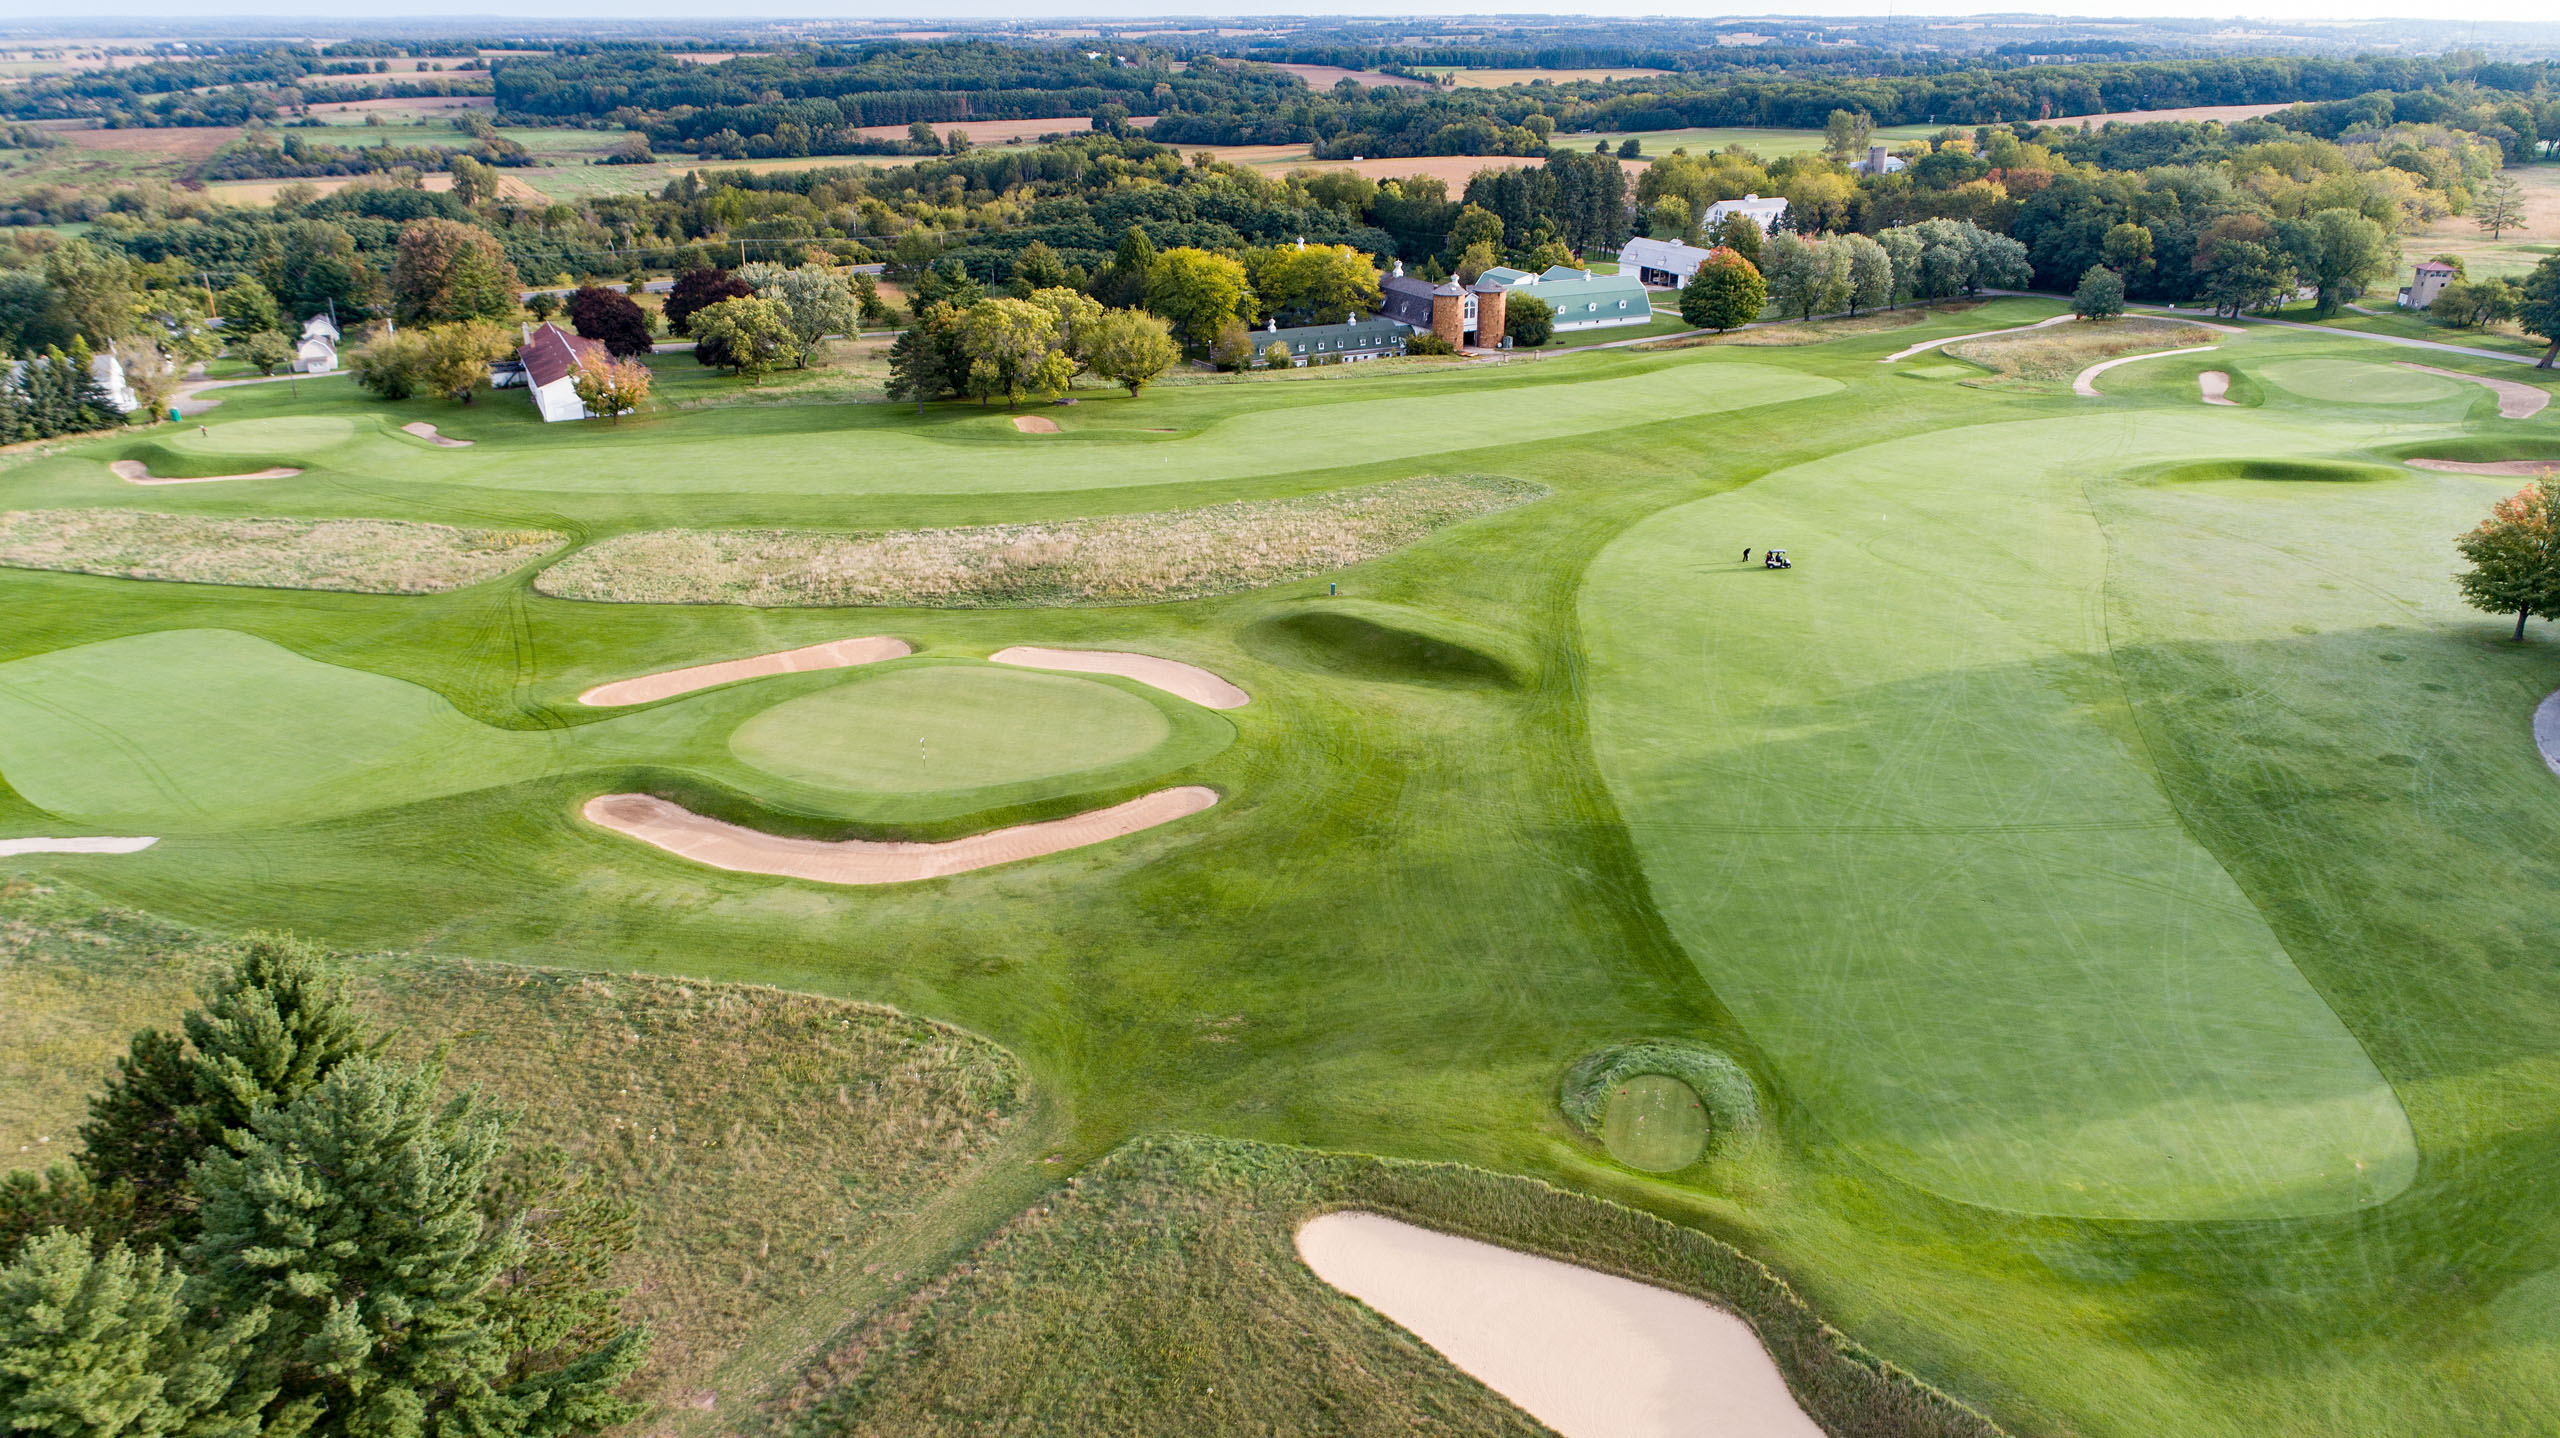 A prime example of triangulation on full display at Lawsonia Links in Wisconsin.